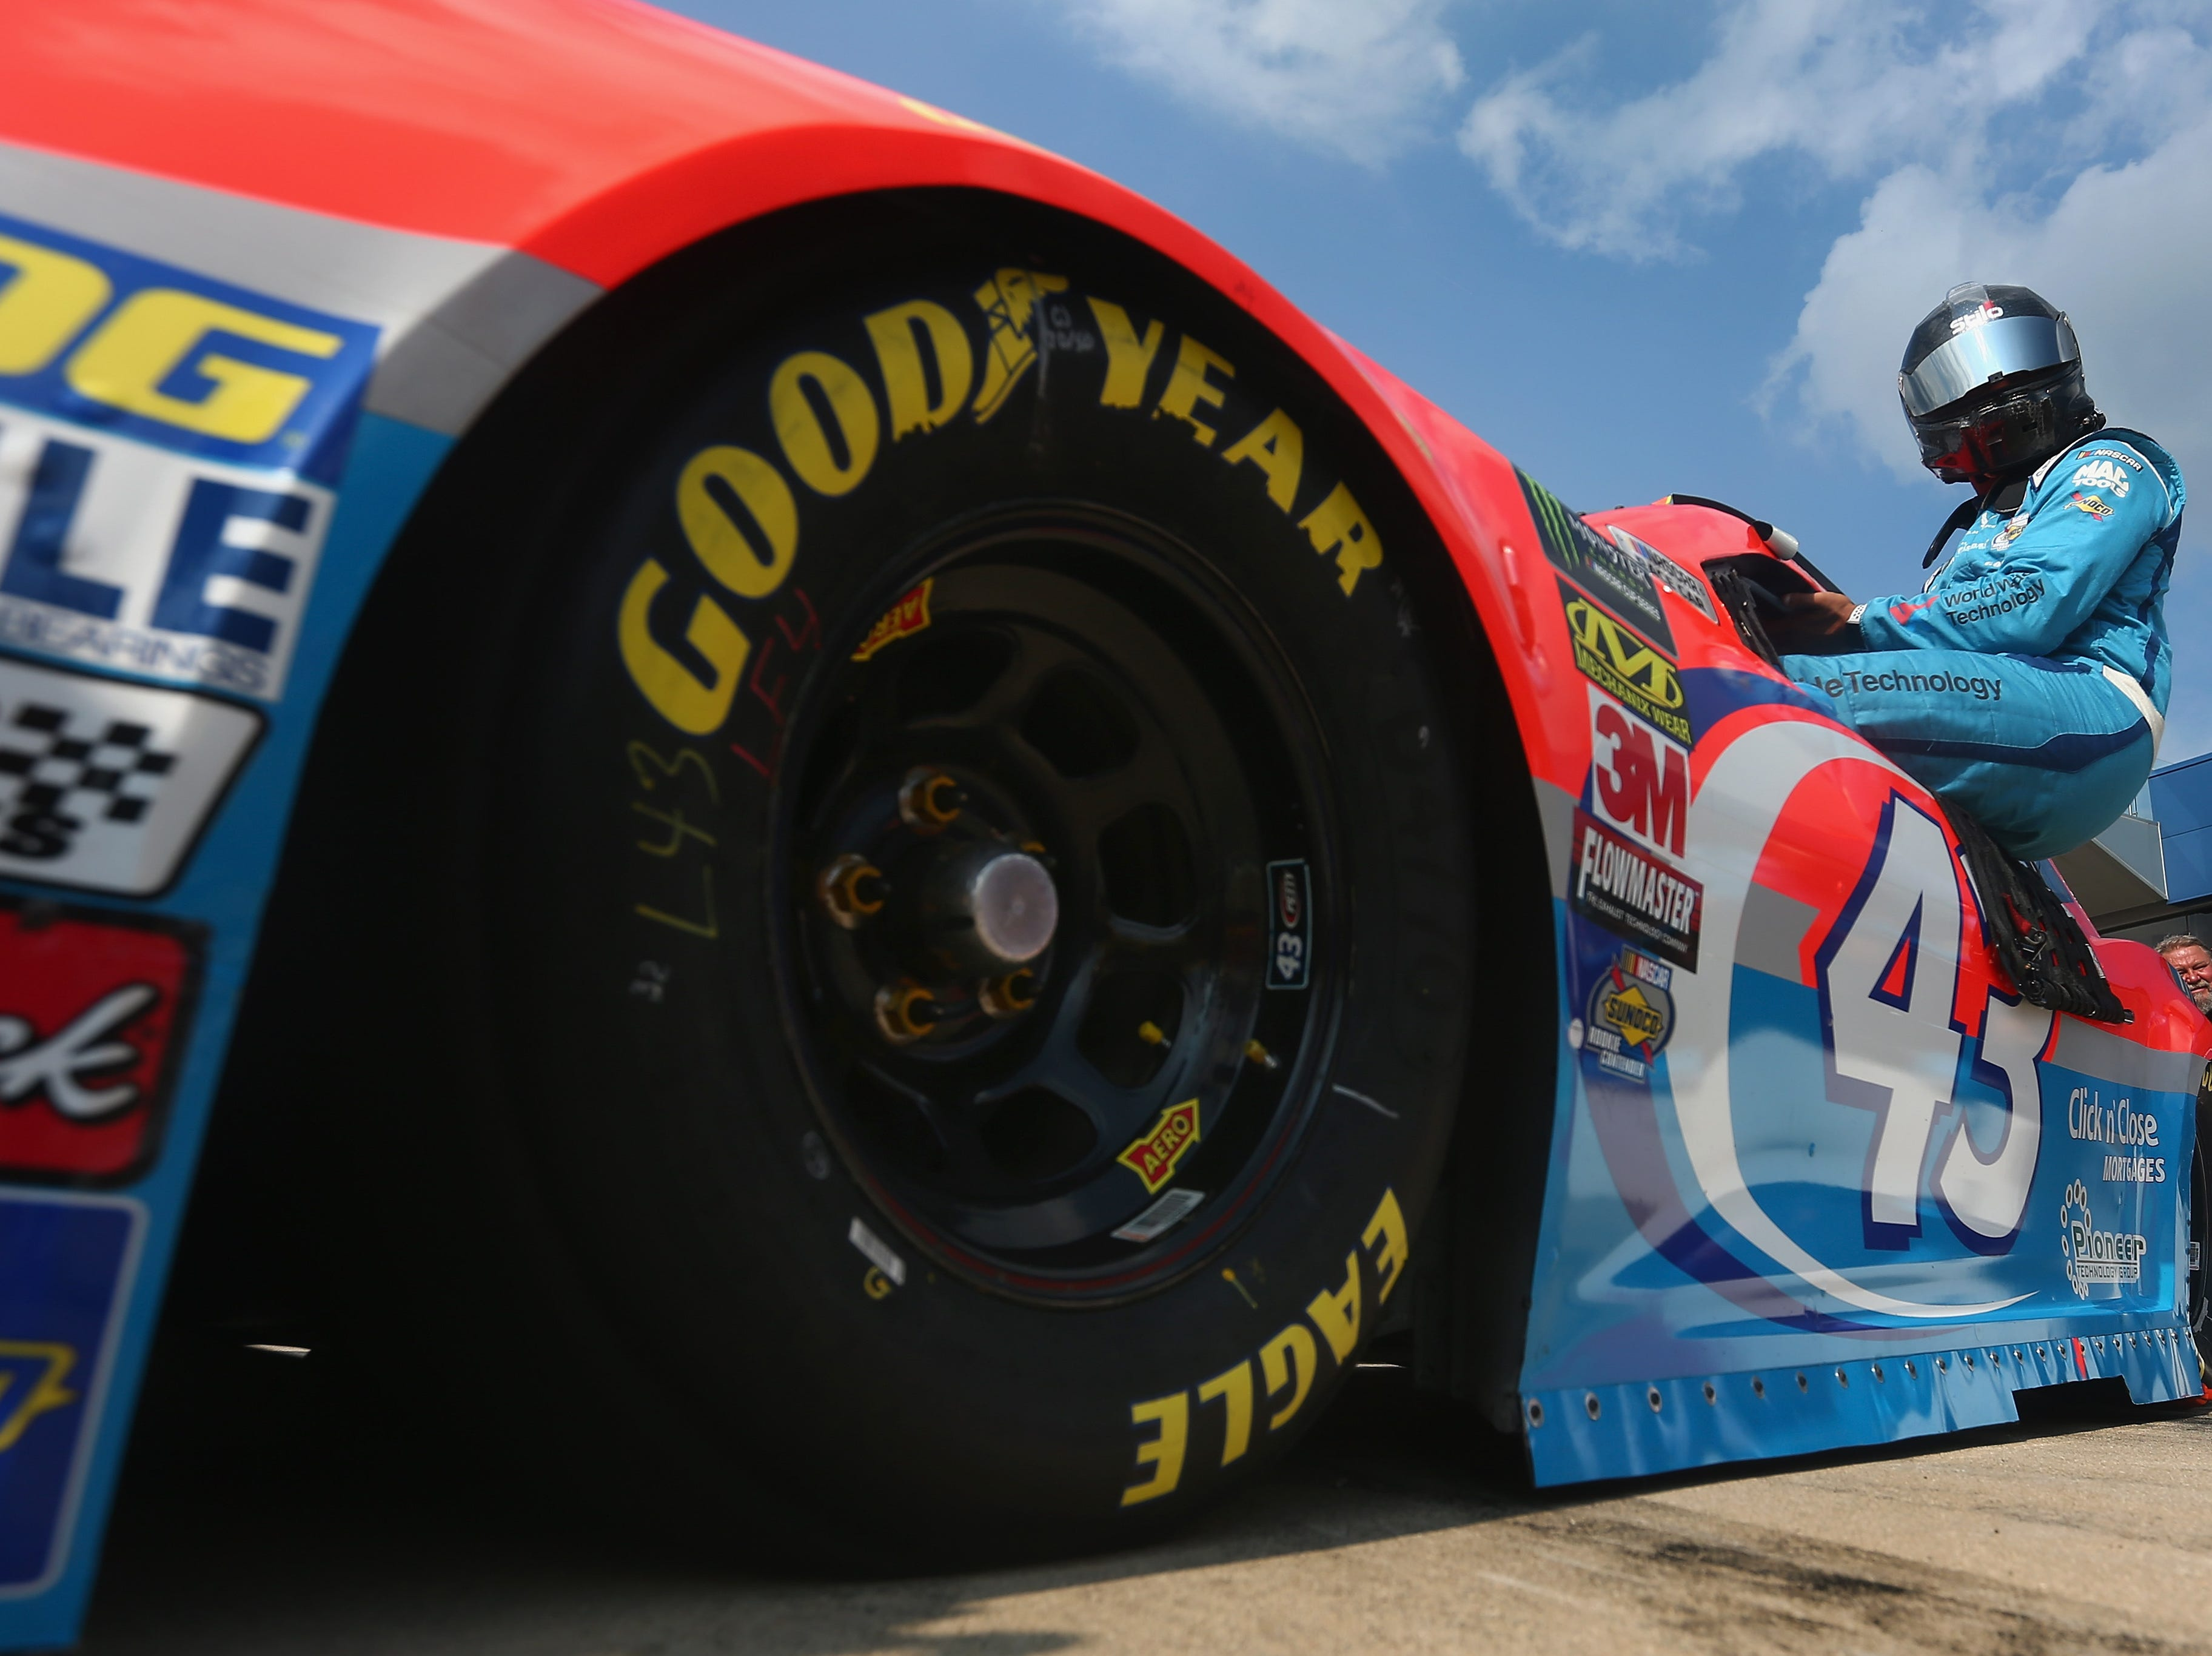 Bubba Wallace, driver of the #43 Medallion Bank/Petty's Garage Chevrolet, climbs into his car during qualifying for the Monster Energy NASCAR Cup Series Consmers Energy 400 at Michigan International Speedway on August 10, 2018 in Brooklyn, Michigan.